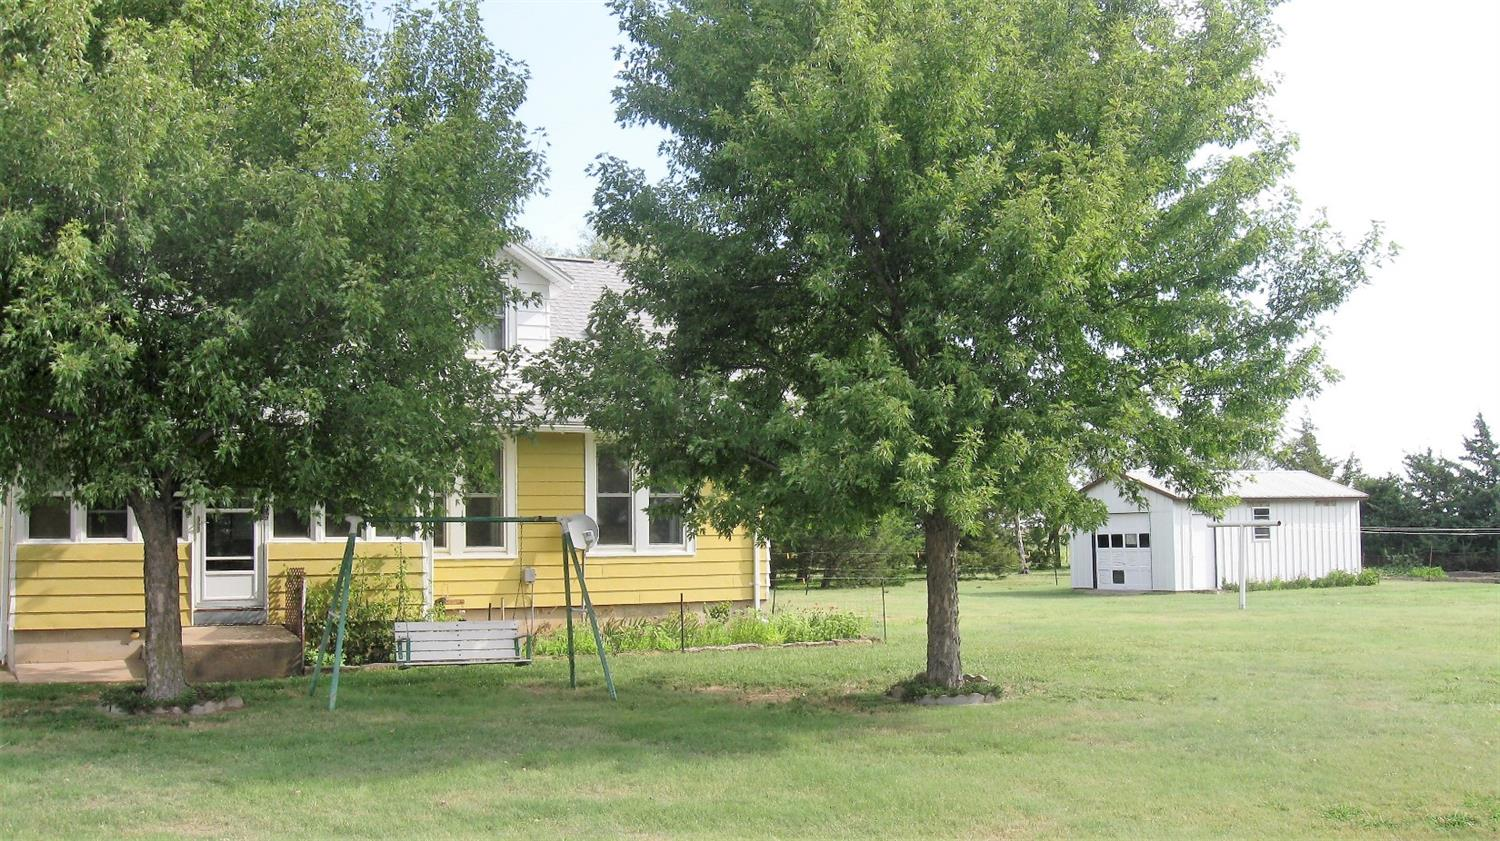 Looking for a Beautiful Country Property? Look no further this is the one! Great older 1 1/2 story country setting on almost 5 acres. House was moved in, in 1995. 4 car garage, 30 x 50 shop, barn, and garden shed. Extra clean & well maintained property 11 miles from GB all blacktop.